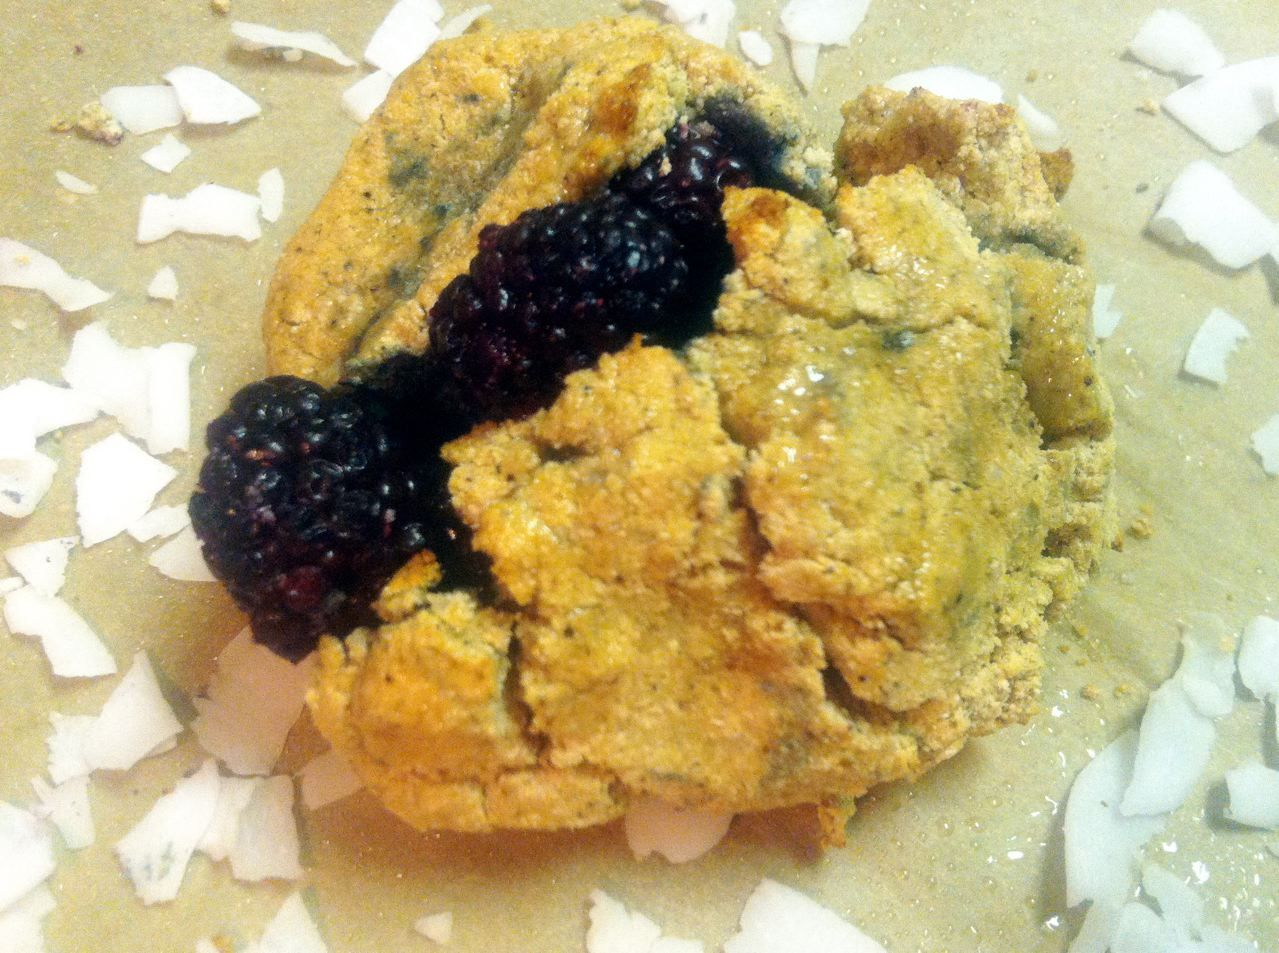 Blackberry Scones with Coconut Flour | Bob's Red Mill Blog